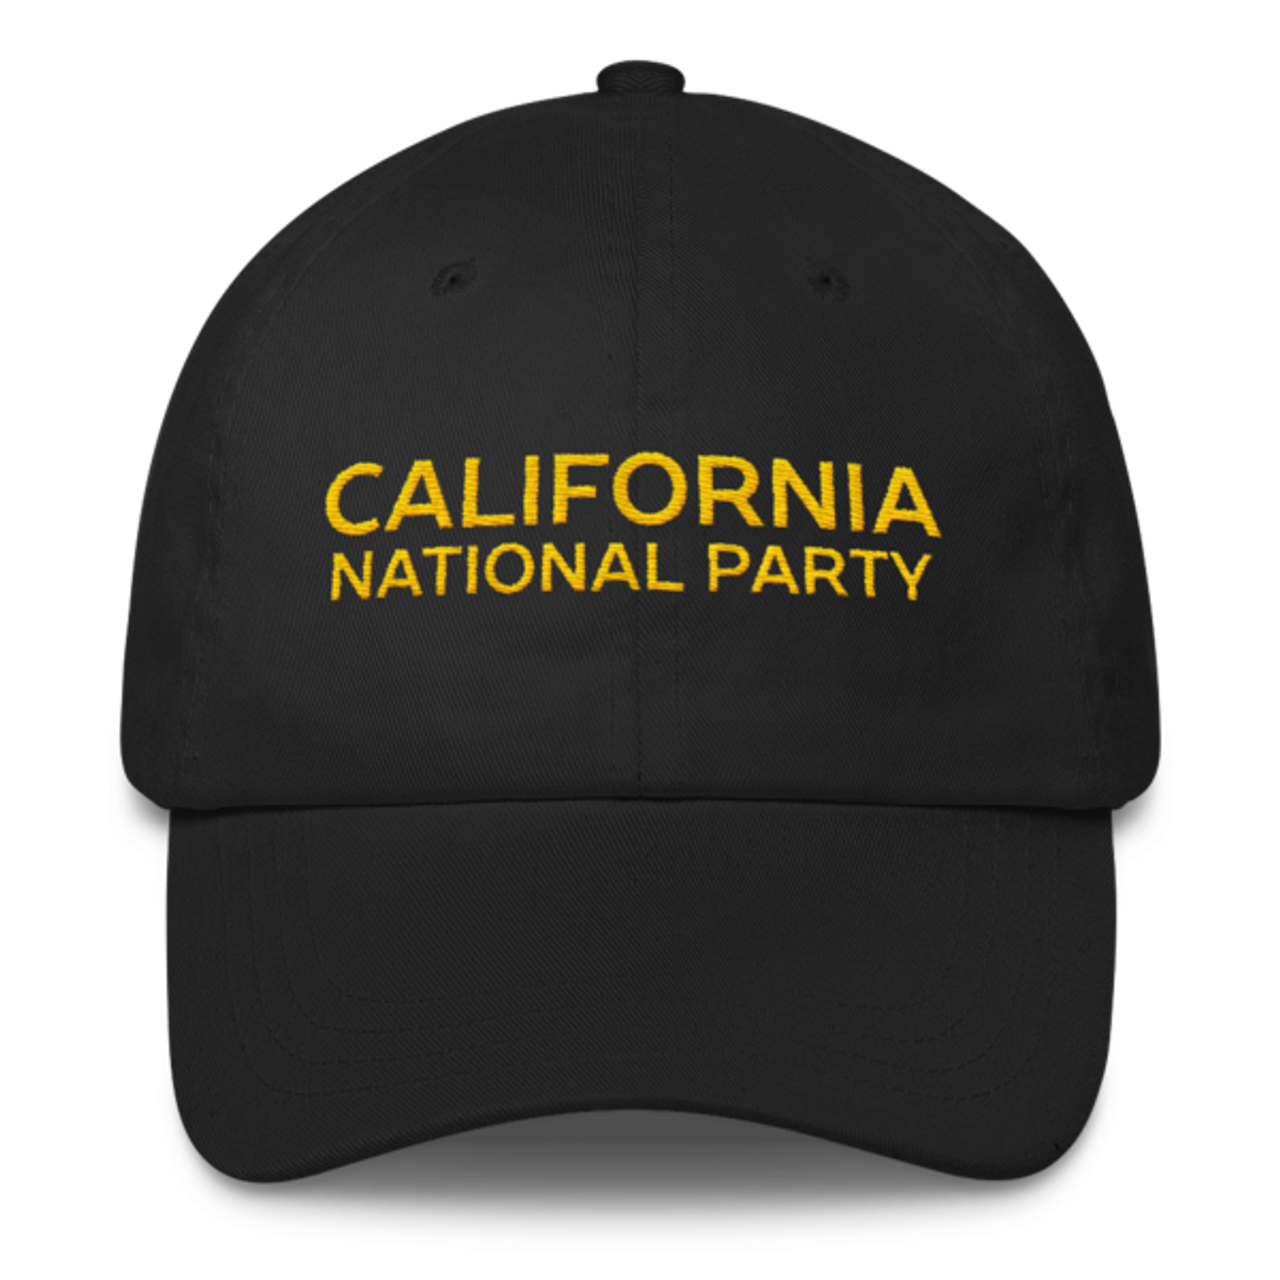 dc65d280e194dc CNP yellow-on-black unstructured baseball hat - FreeTheBear.store